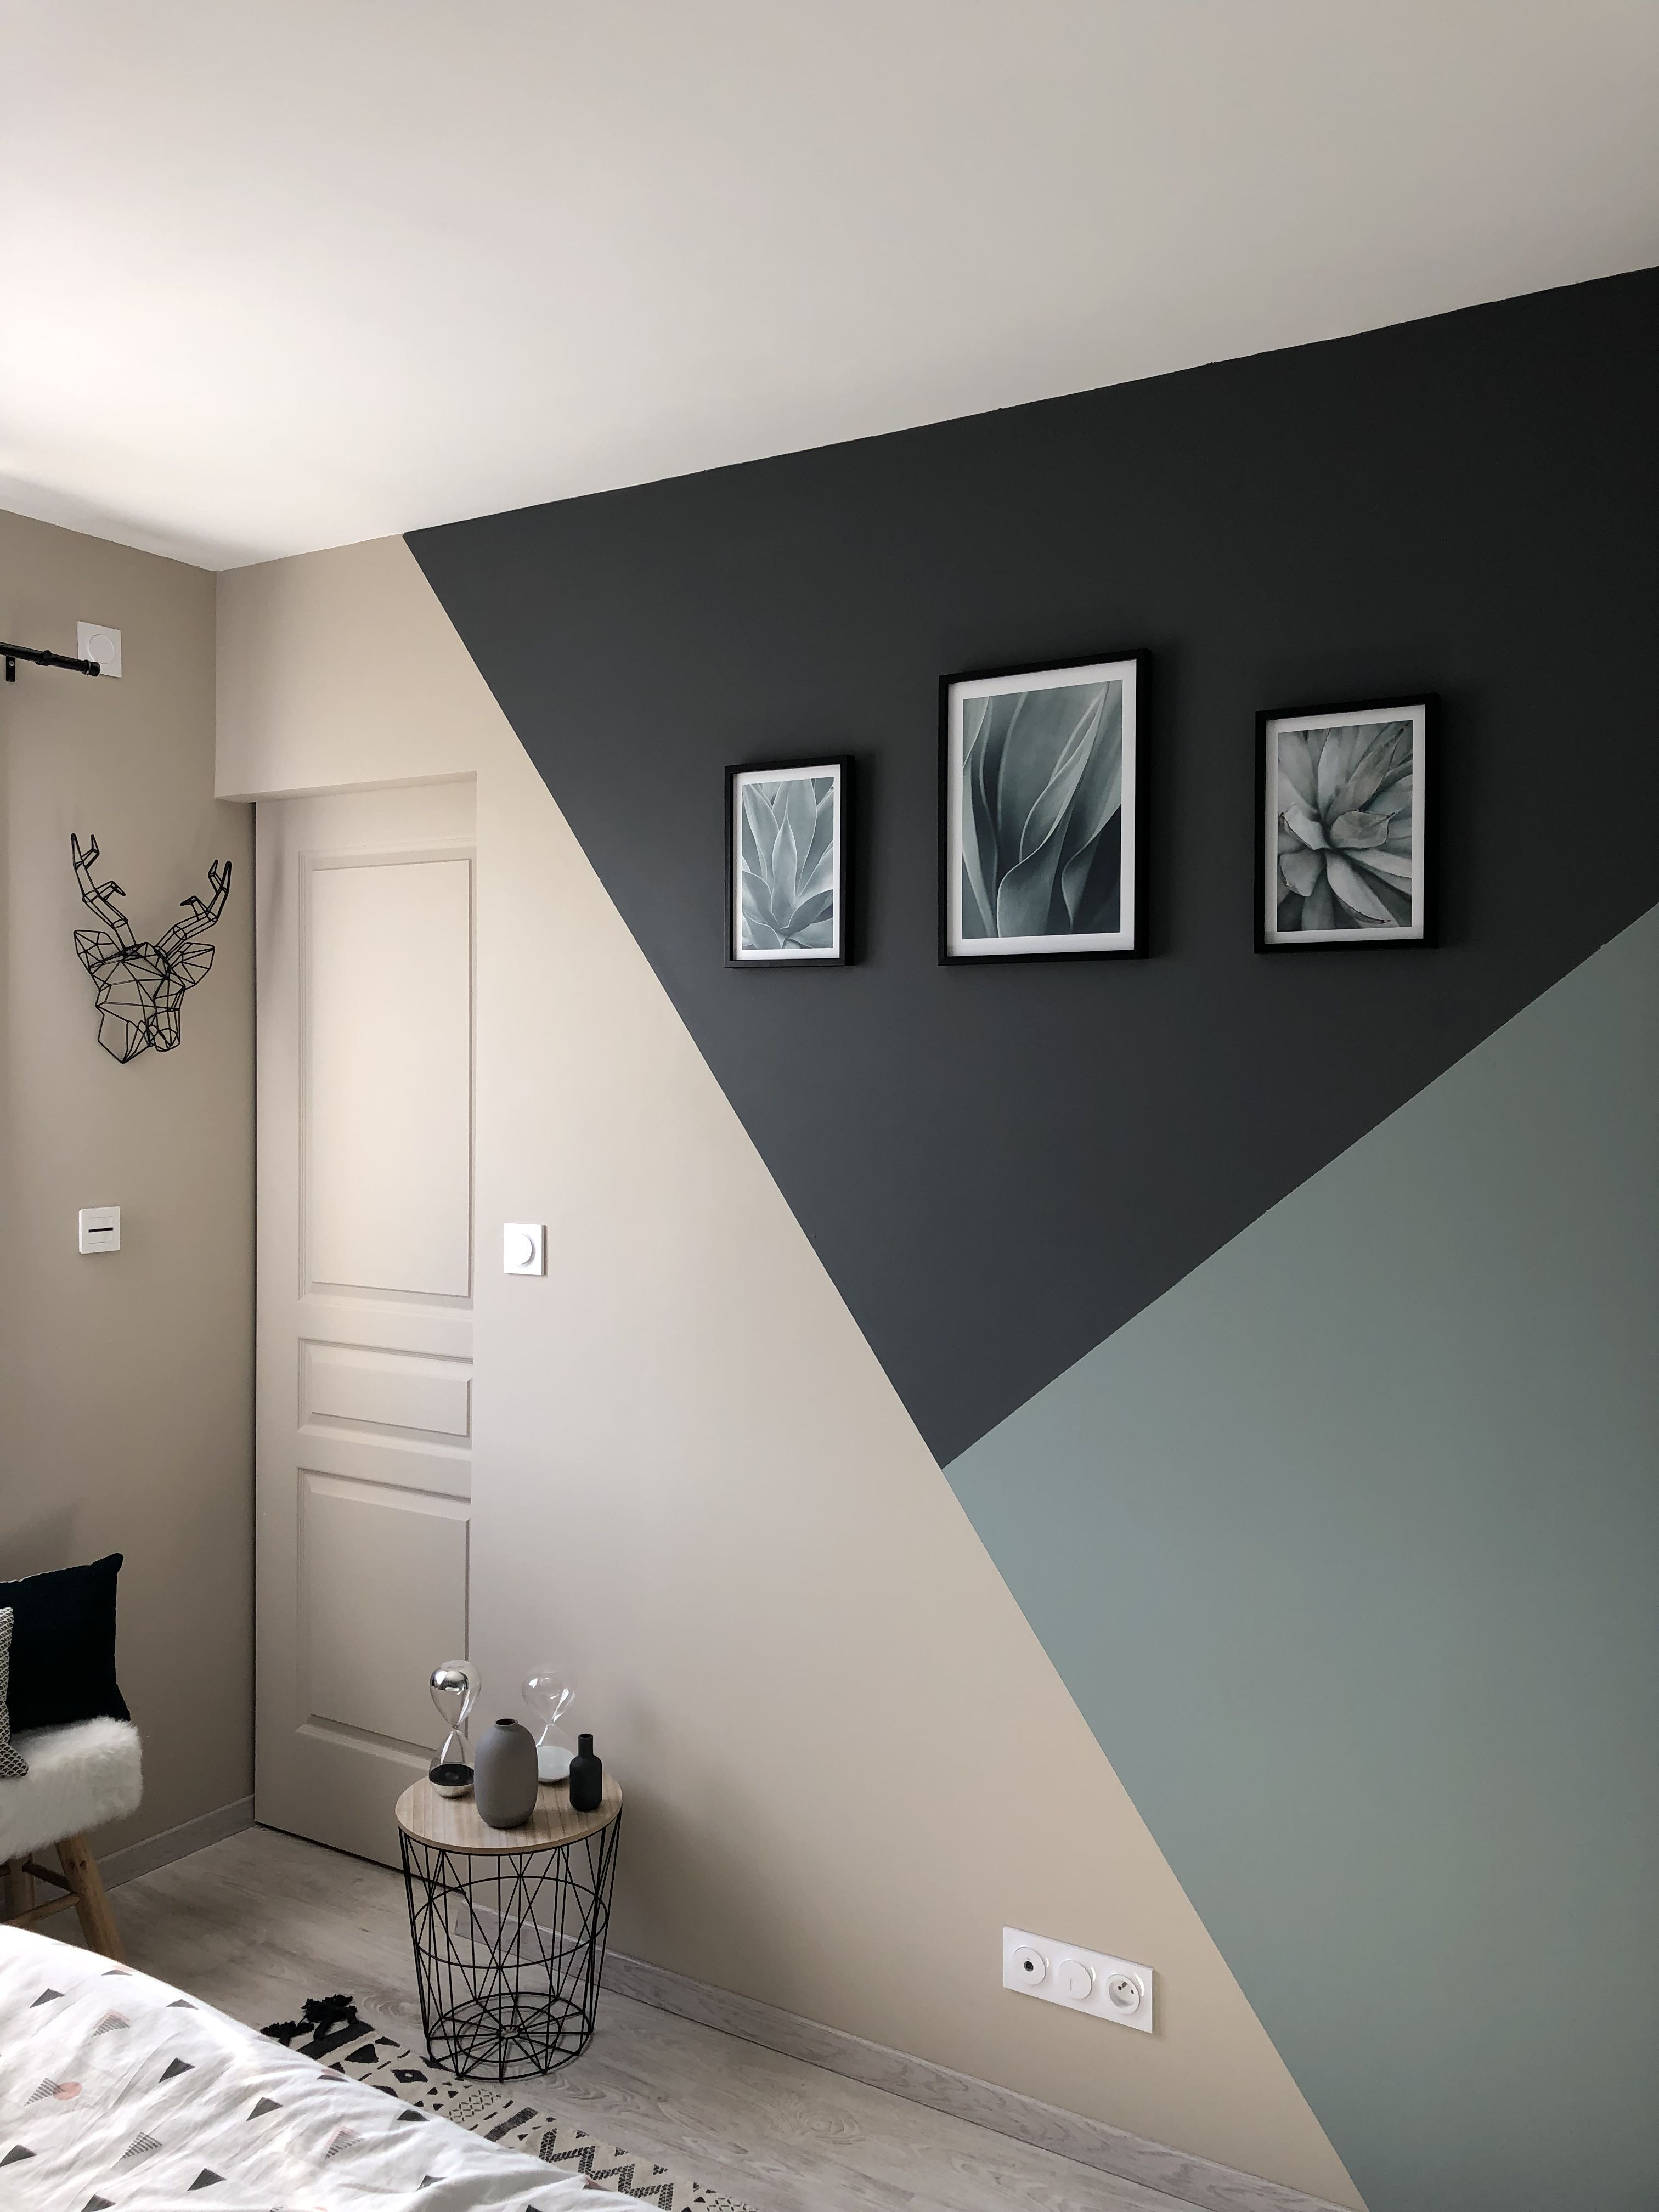 Suite Parentale Ethnique Welcome To Blog Bedroom Wall Designs Home Decor Bedroom Wall Paint